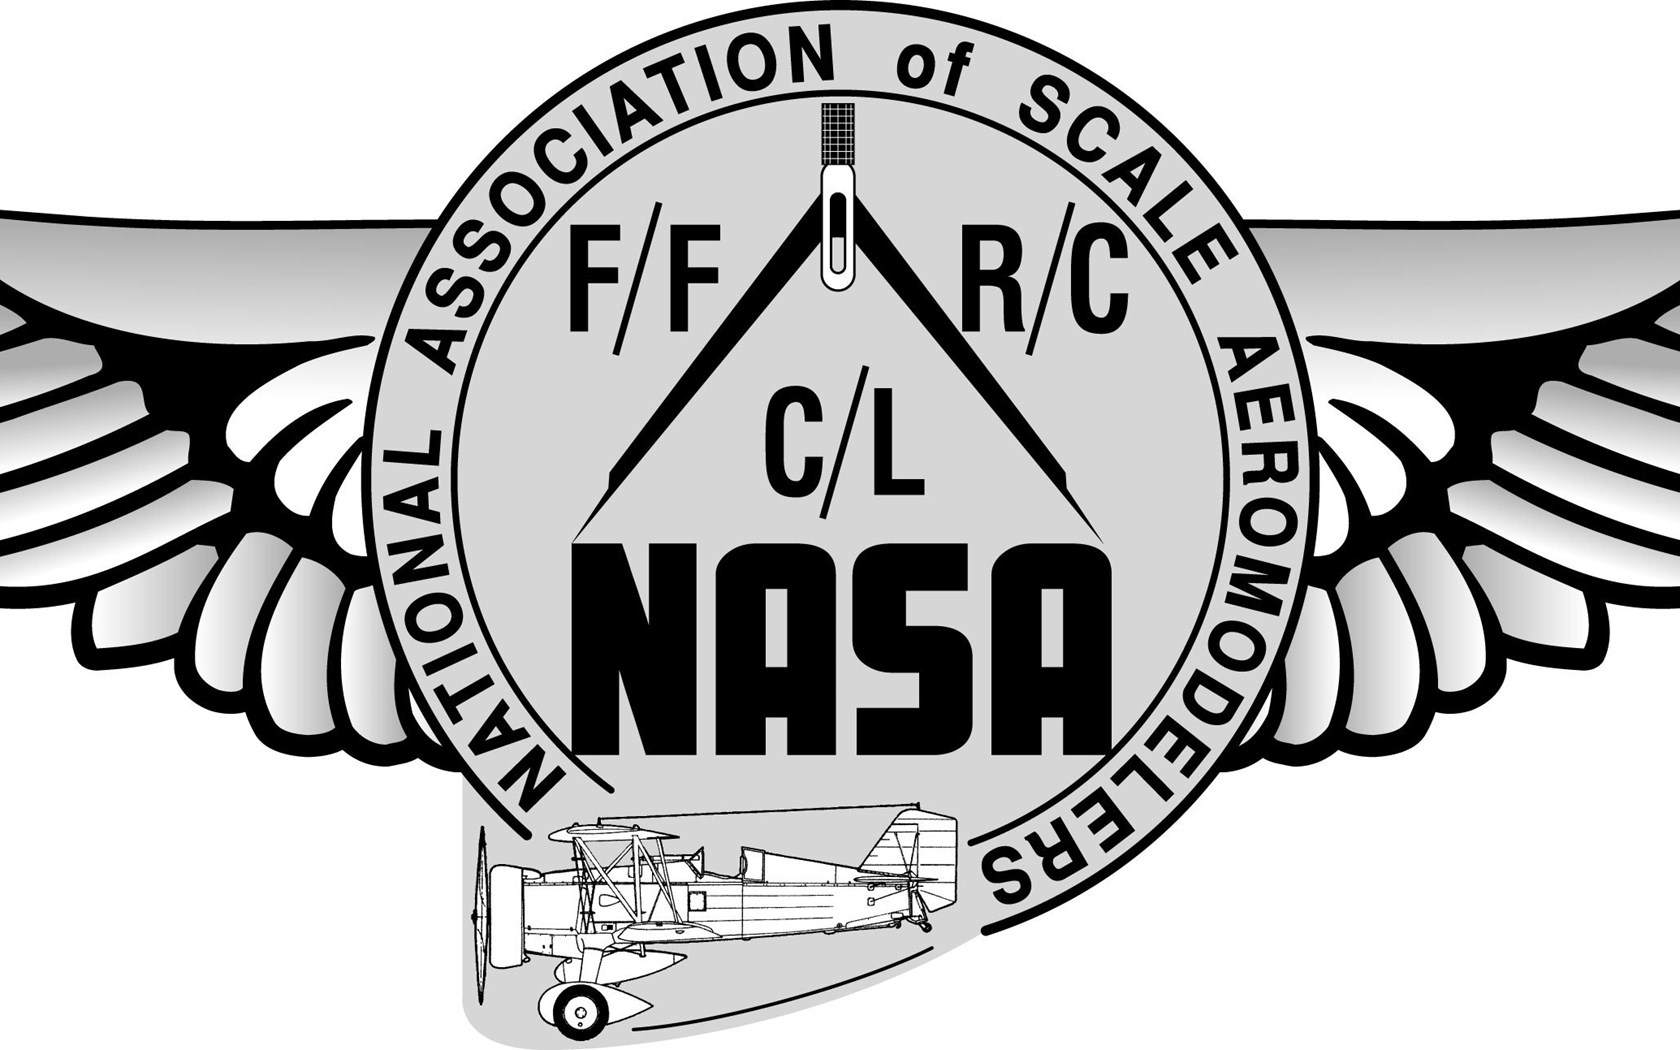 nasa apollo logo vector - photo #31